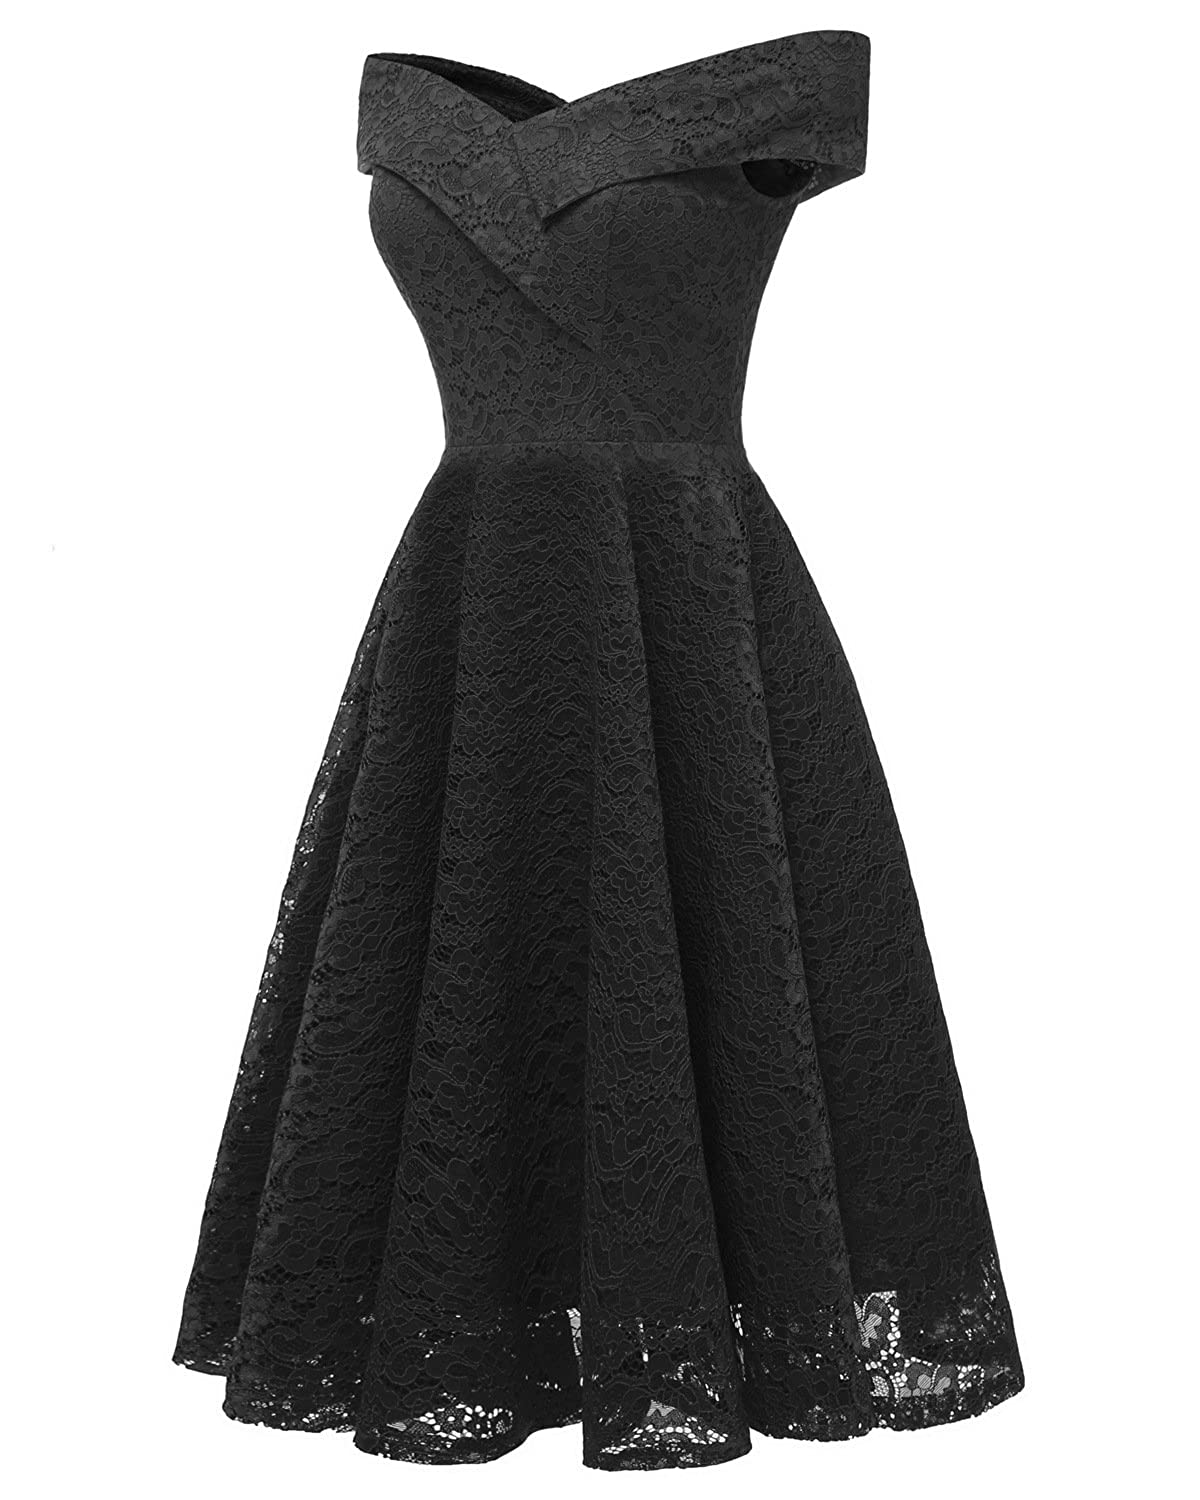 Swibe Womens Off Shoulder Dresses Vintage Lace Floral Bridesmaid Dress A-Line Cocktail Party Prom at Amazon Womens Clothing store: